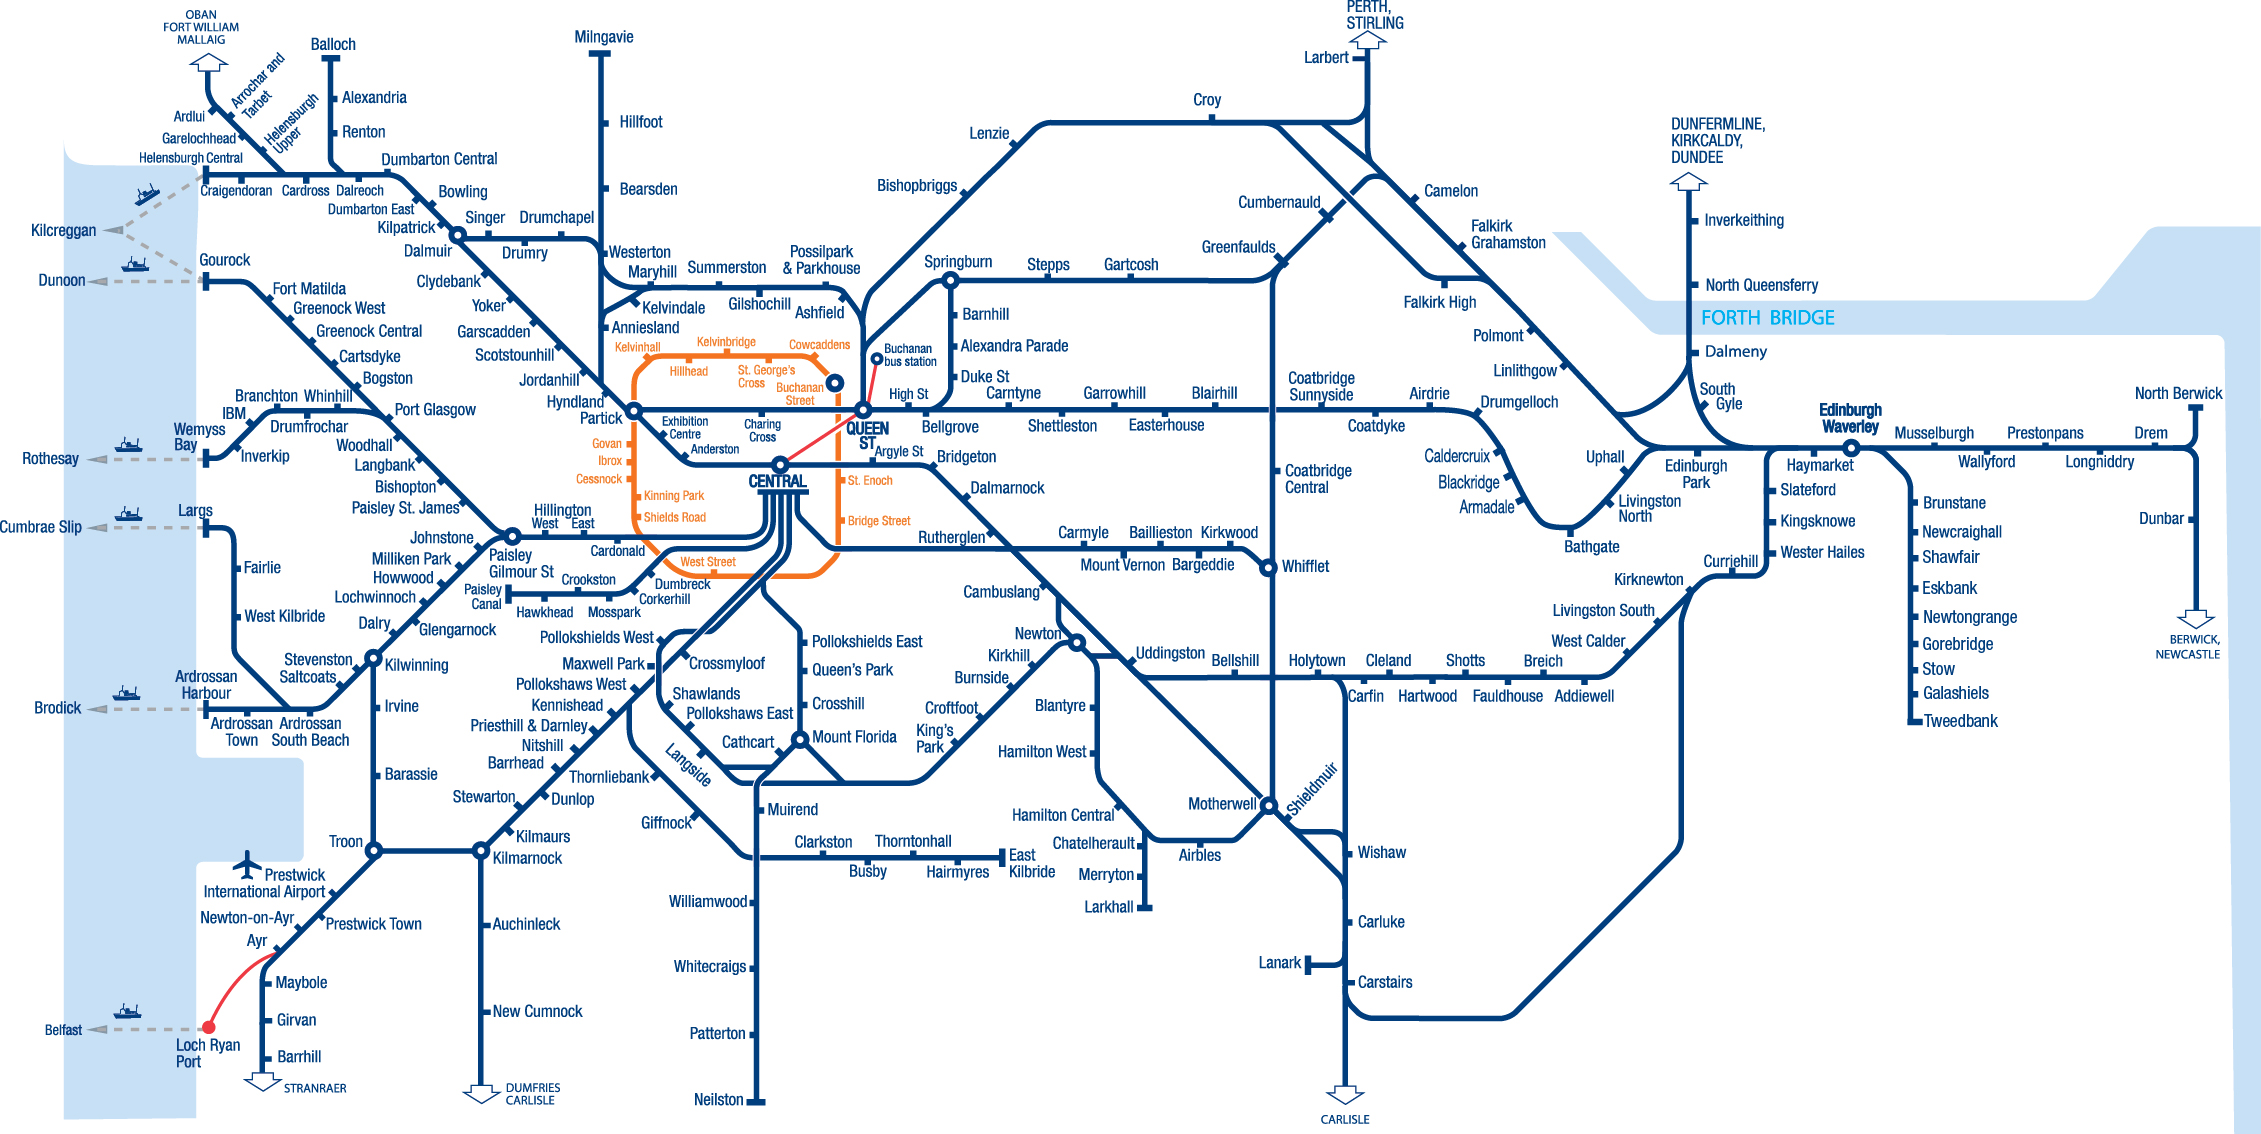 Train Routes In Scotland Map.Full Station Map Of Scotland 2015 A Freedom Of Information Request